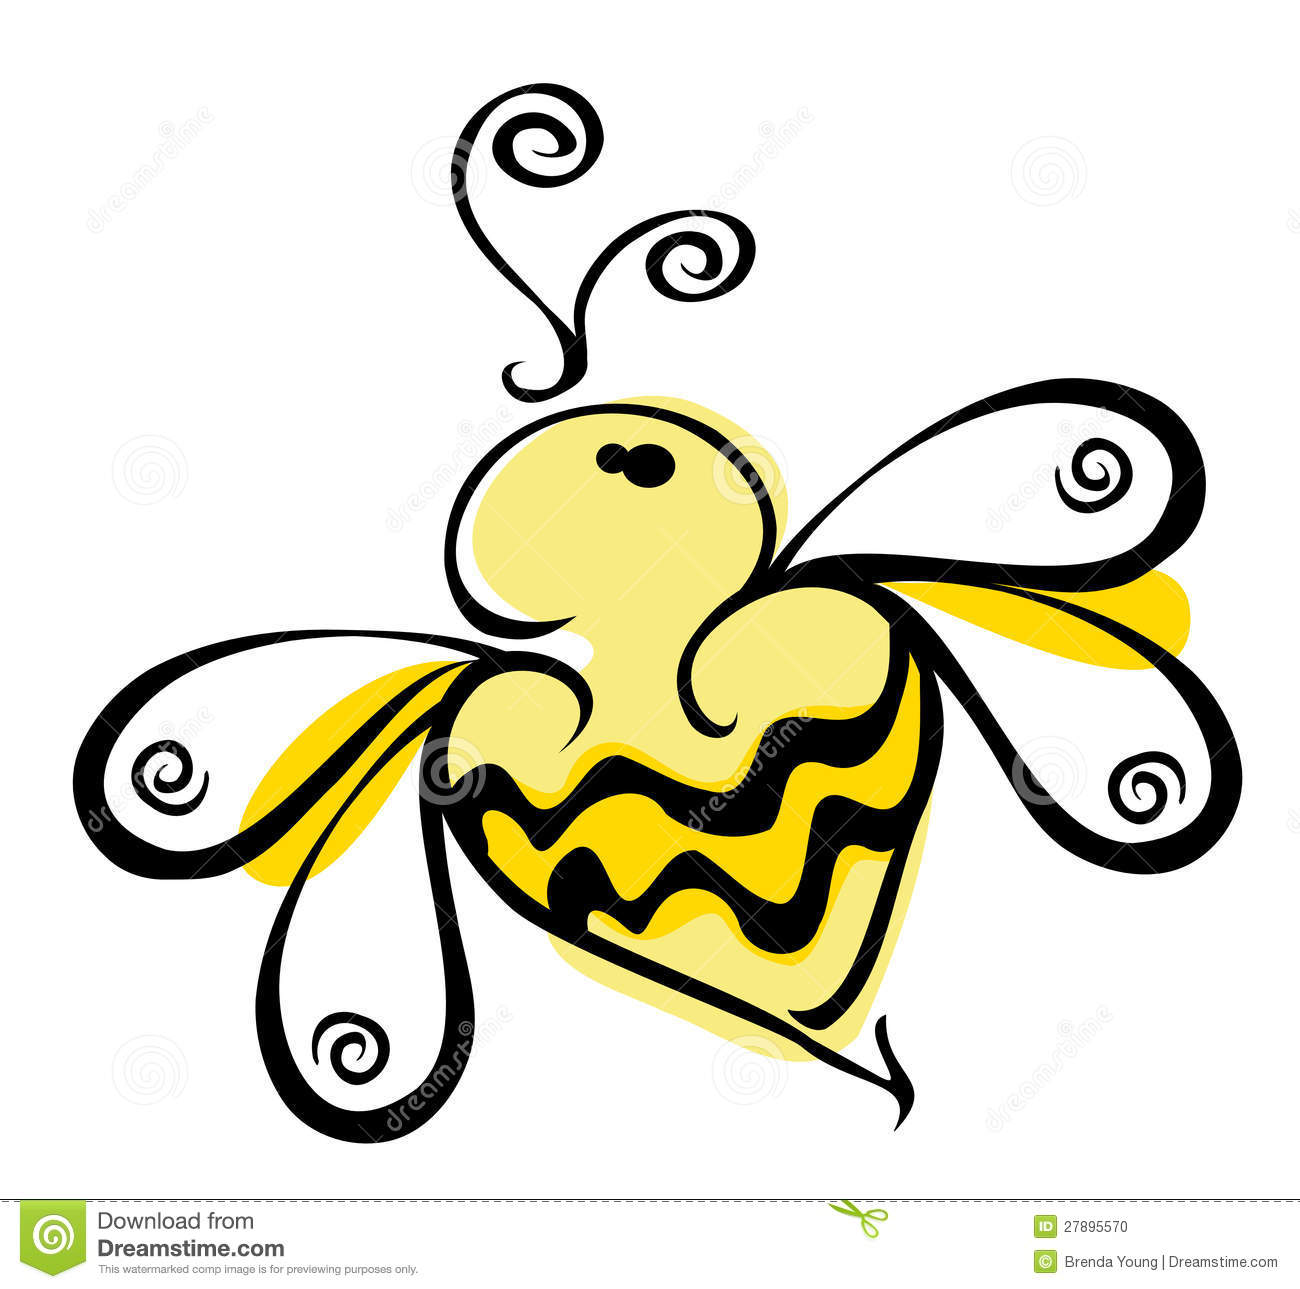 Tattoo scorpion stock photos and images - Bee Logo Stock Photo Image 27895570